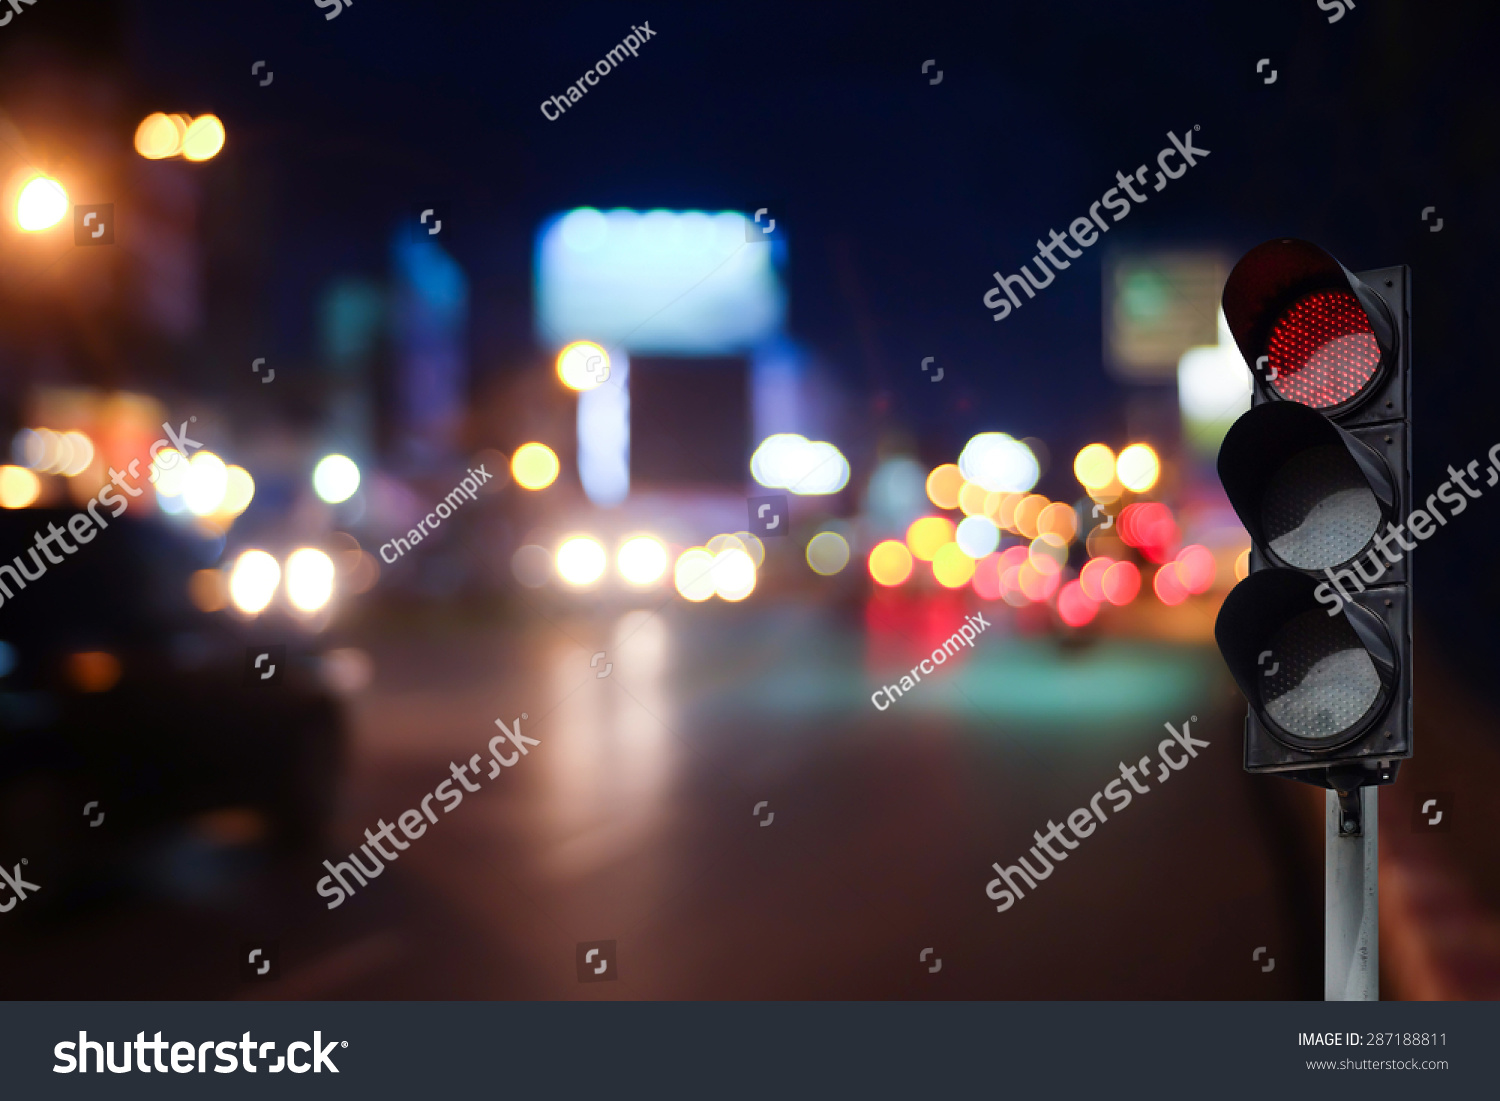 Red Traffic Light On Road Night Stock Photo 287188811 - Shutterstock for Traffic Light On Road At Night  177nar